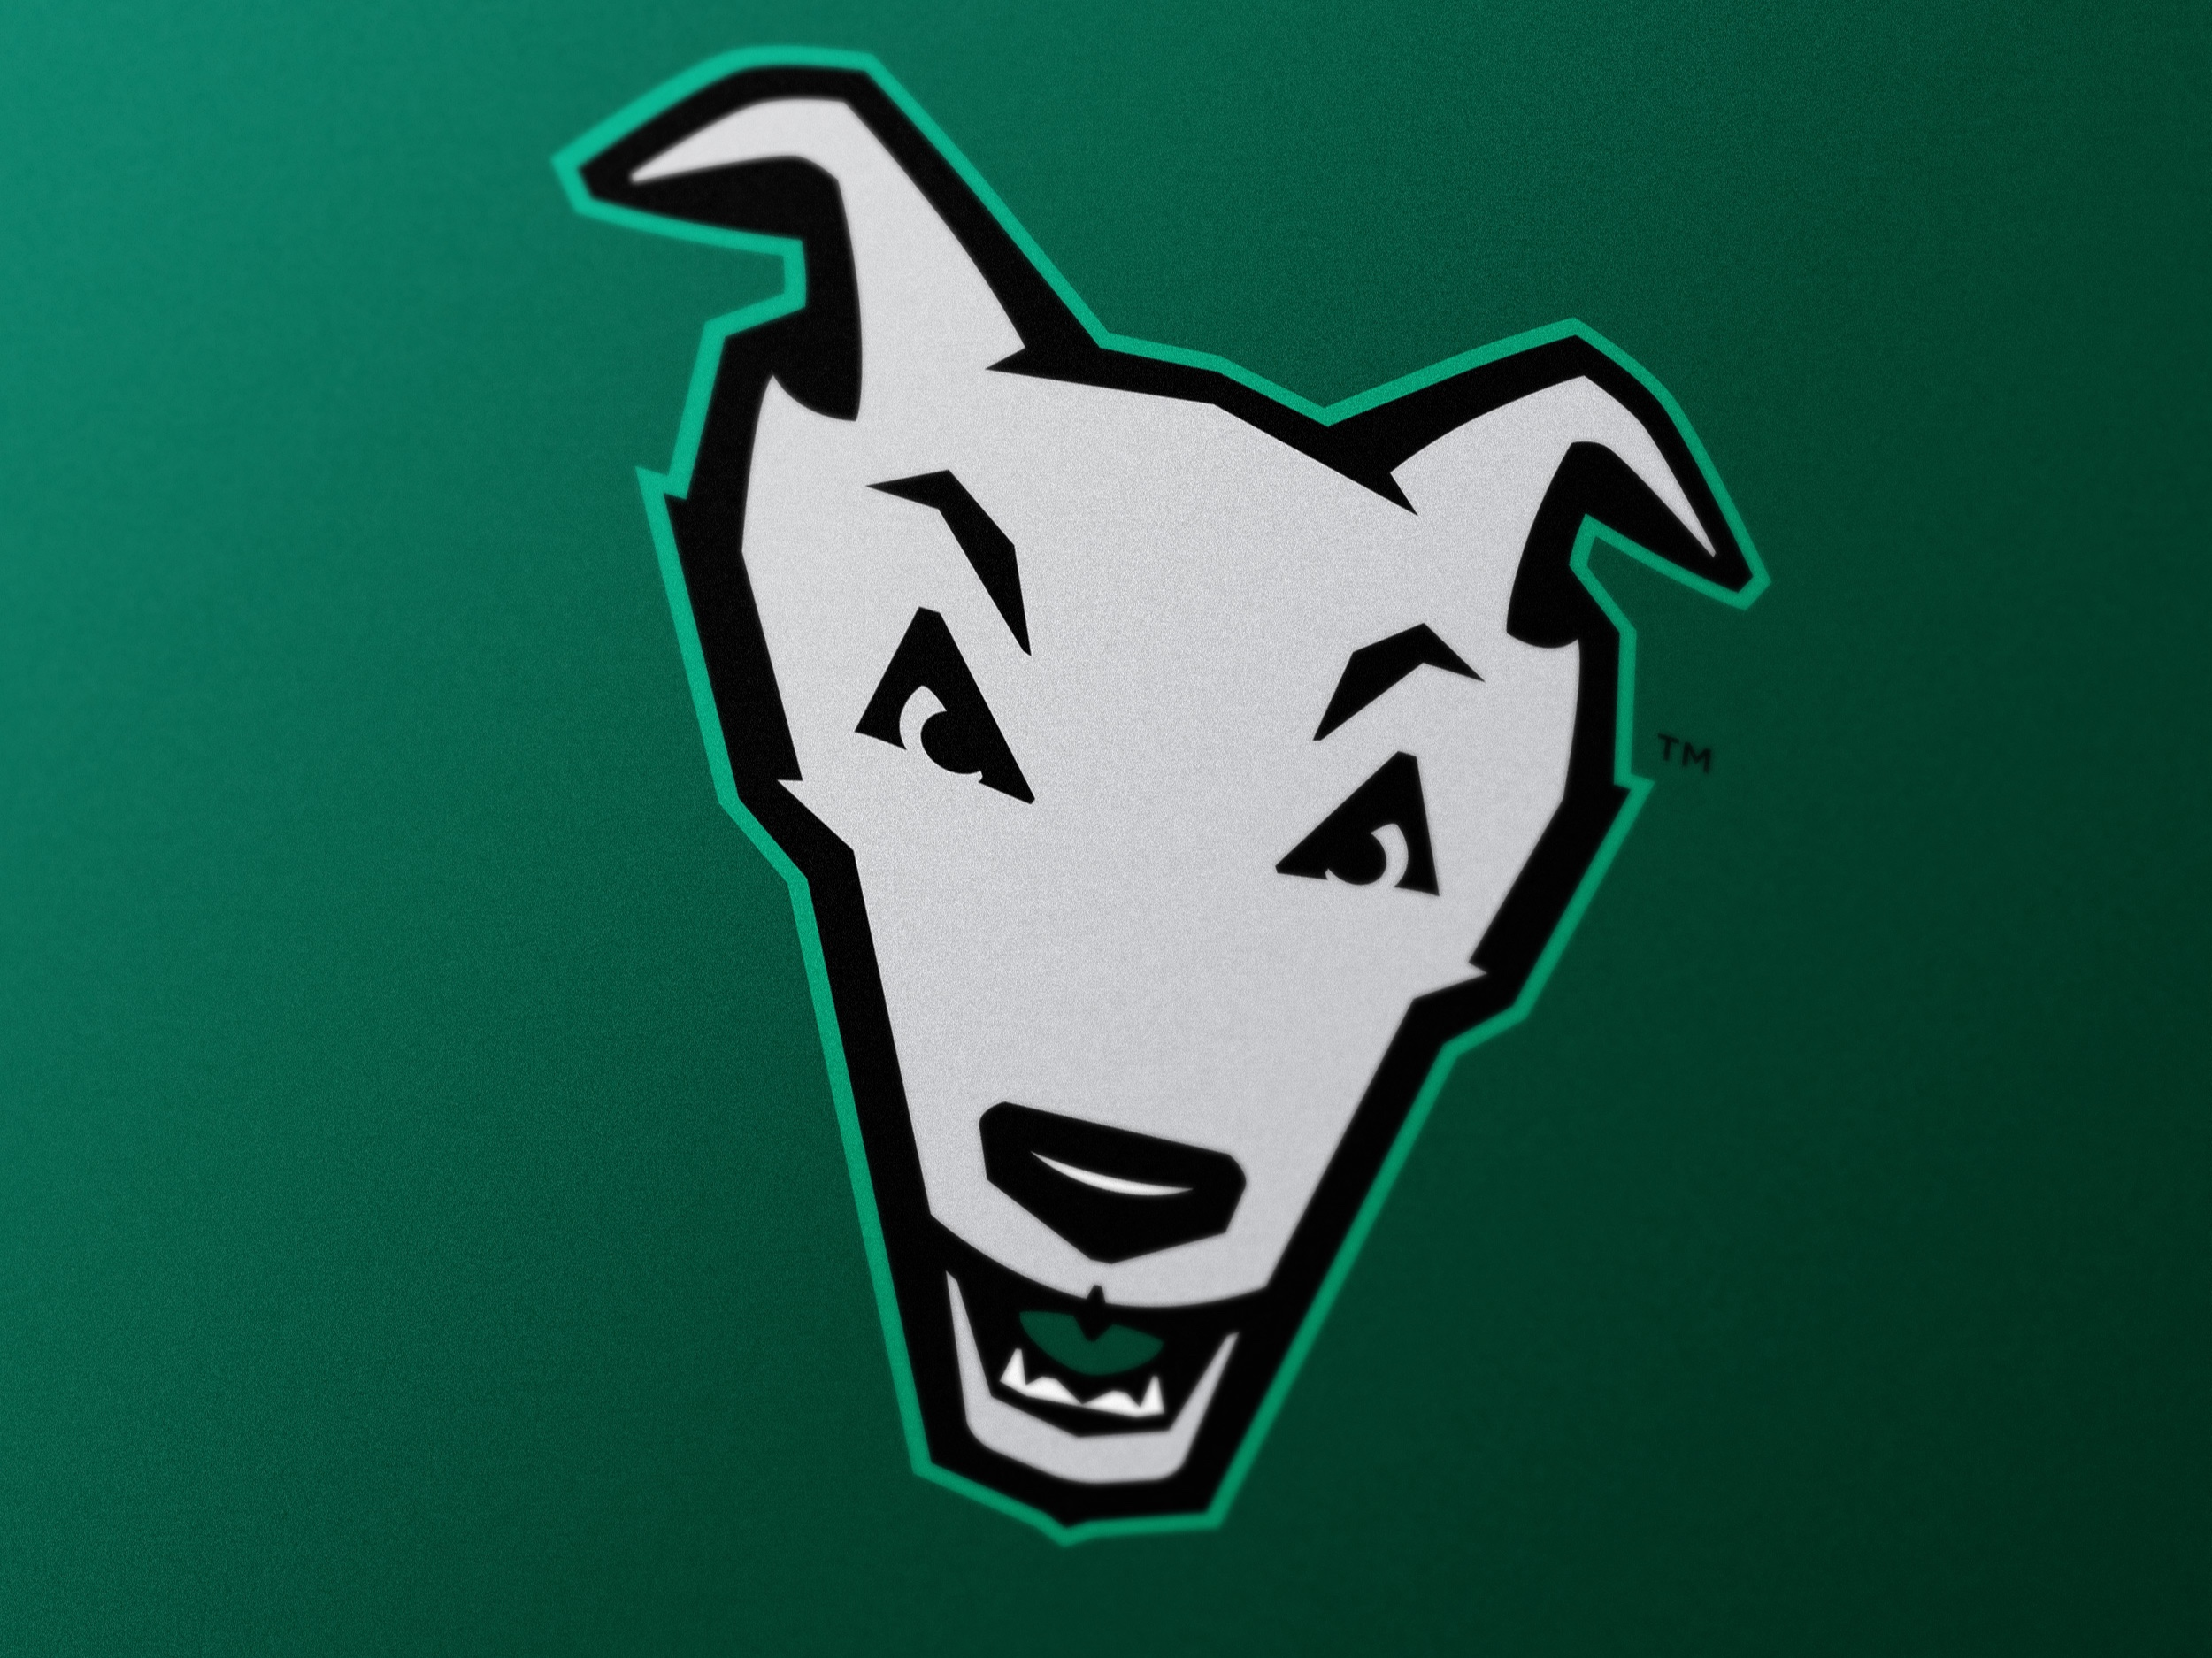 Loyola Greyhounds - Athletics Brand Identity